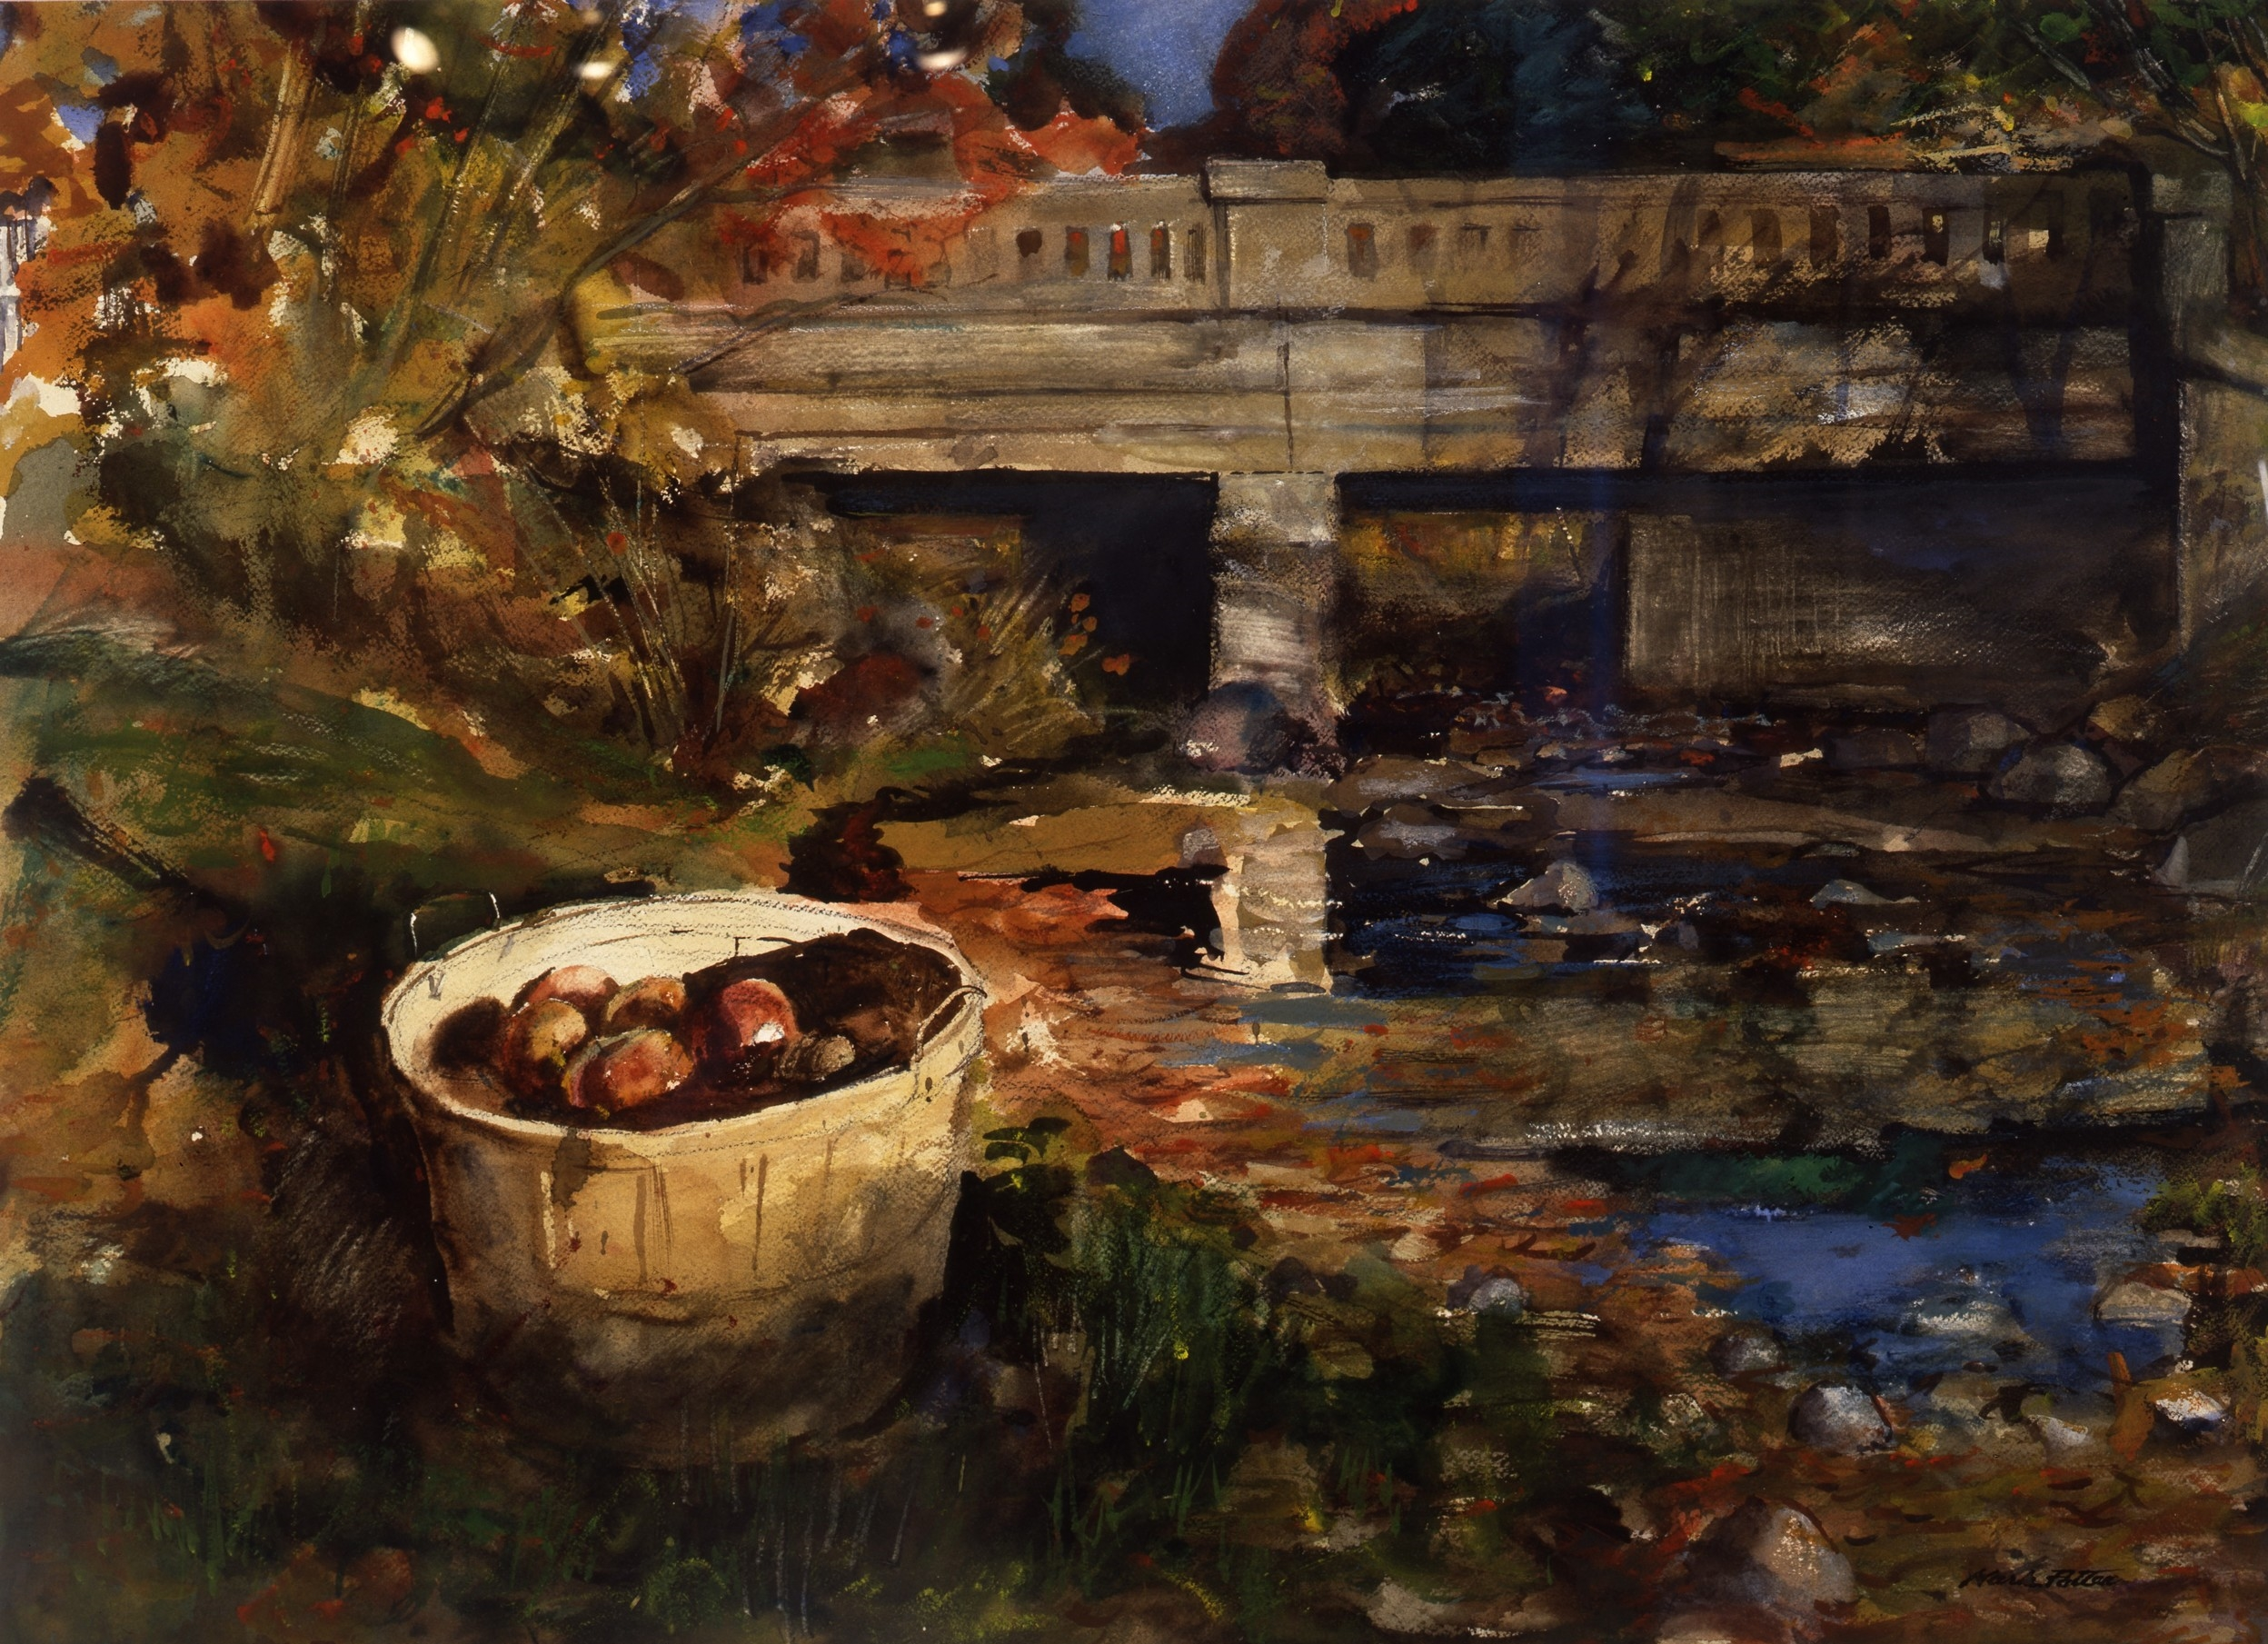 Bridge and Apple Basket.      1992, watercolor. 19 x 28.5 inches. Collection of The Taft School.